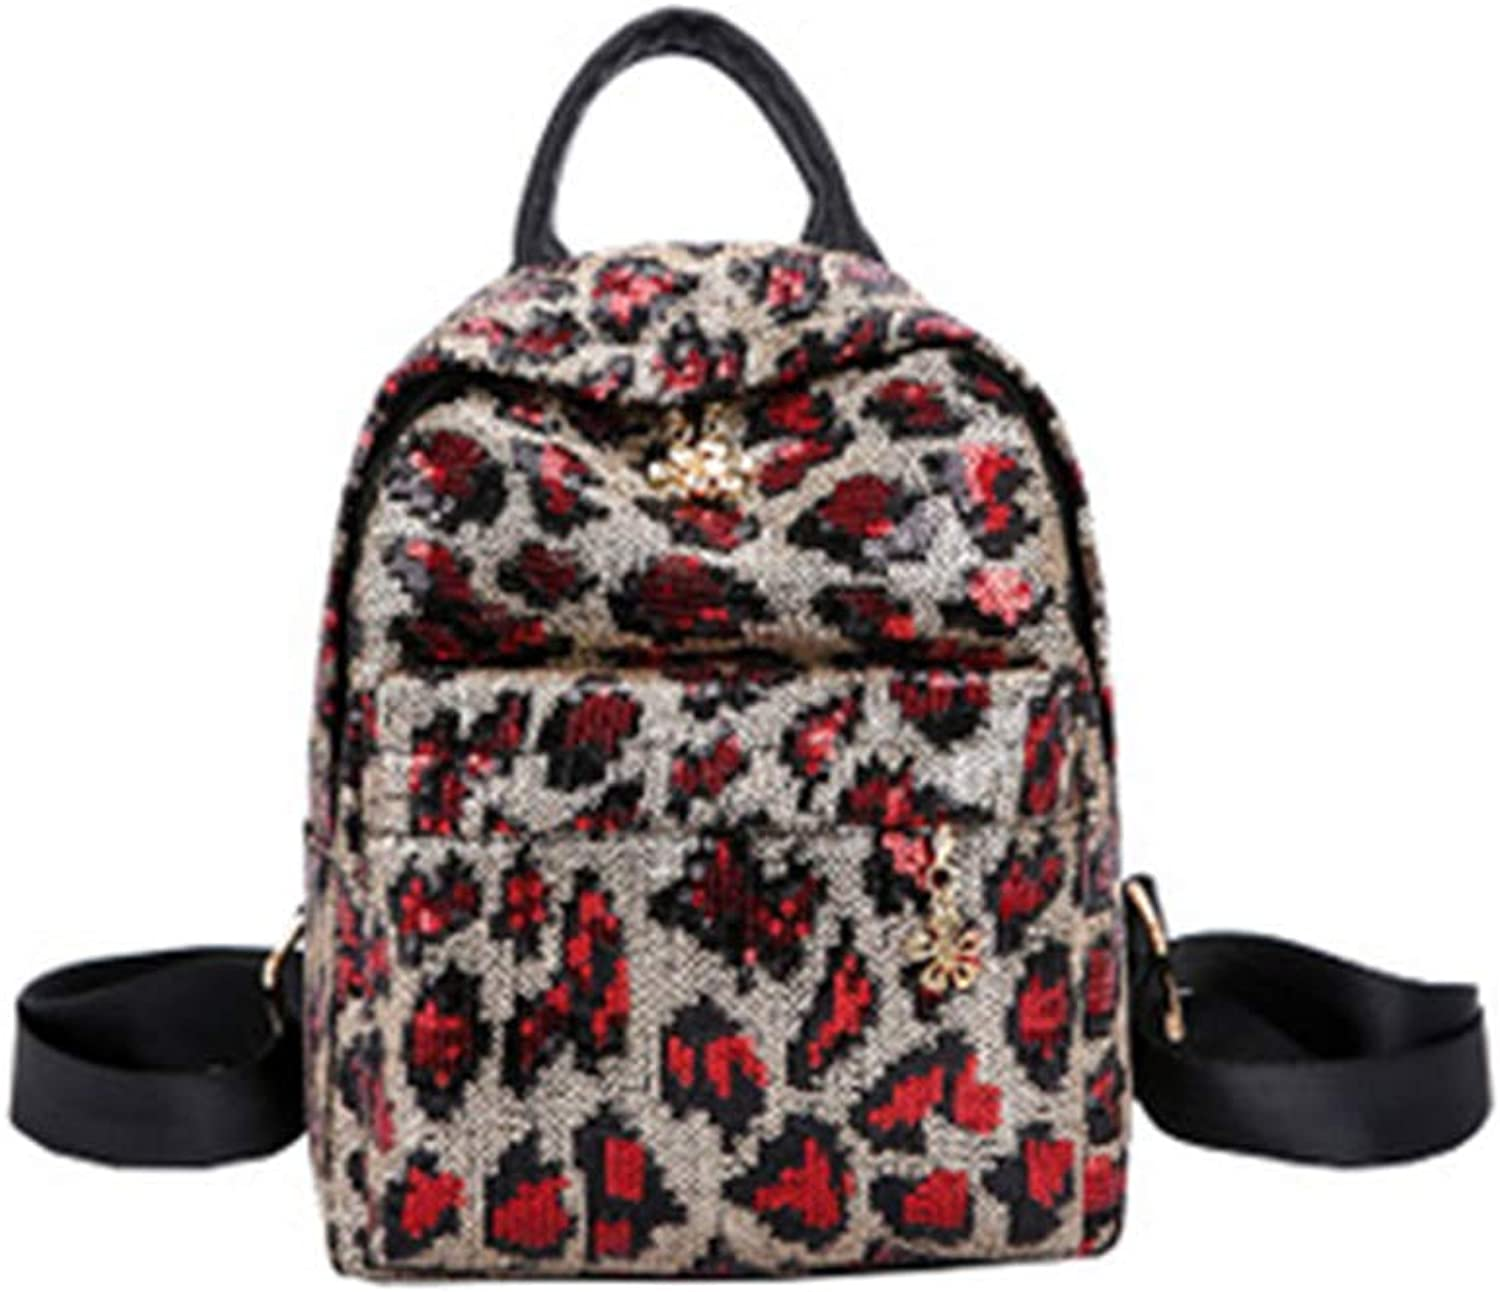 22ab440eac7d Stylish and Simple Sequined Print Trend Backpack, MultiFunctional ...